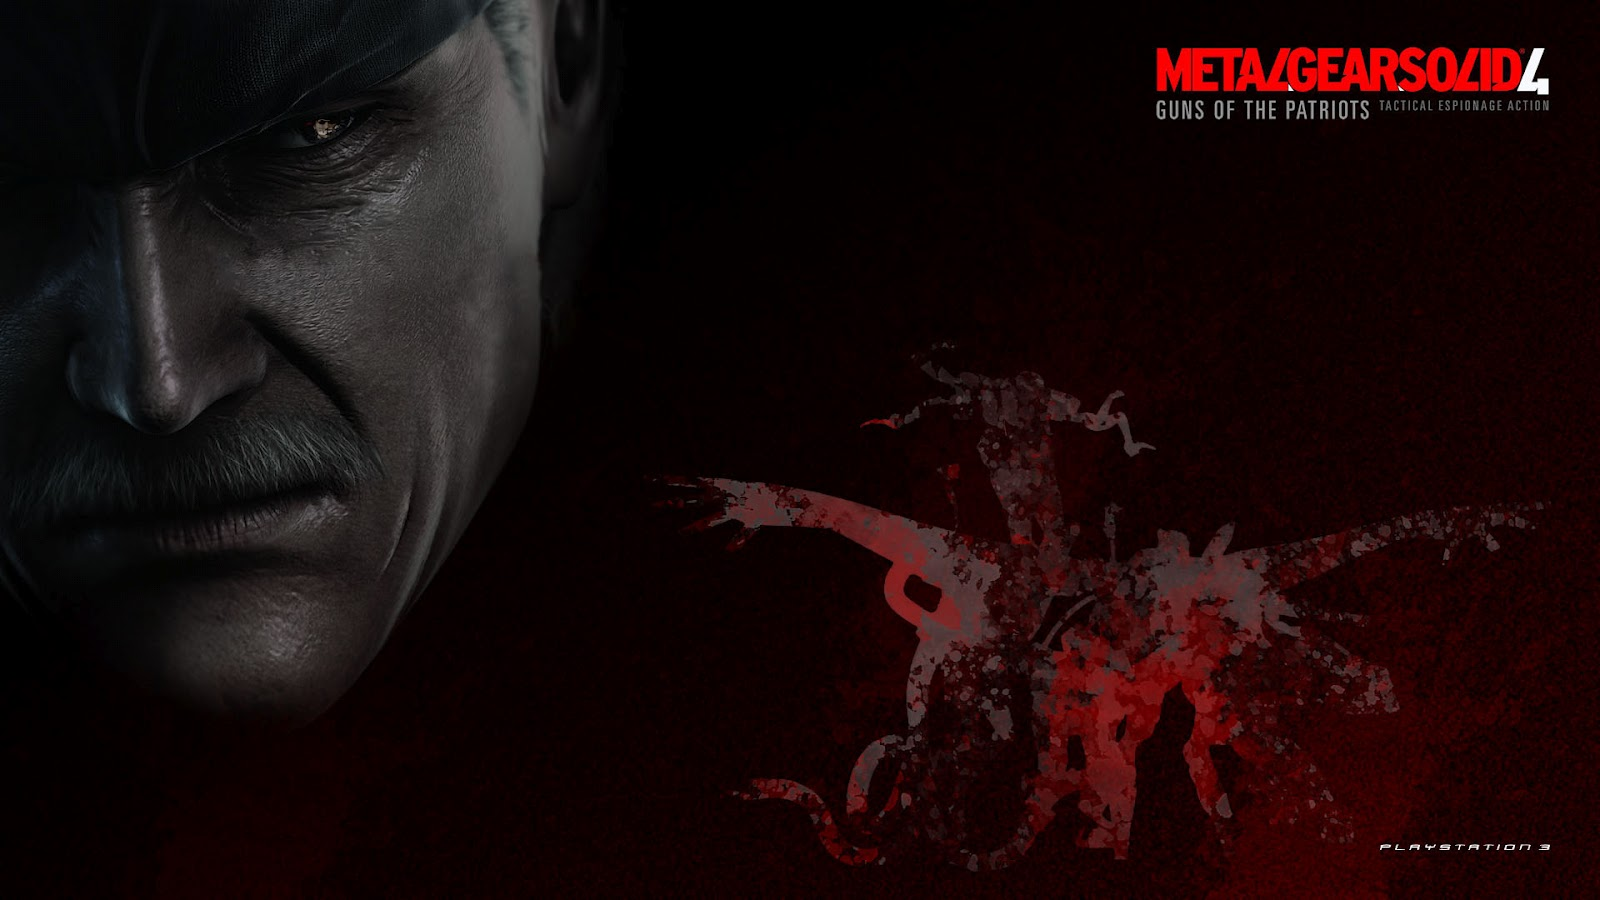 metal+gear+solid+4+wallpaper+1 Metal Gear Solid 4: Guns of the Patriots Wallpapers in HD